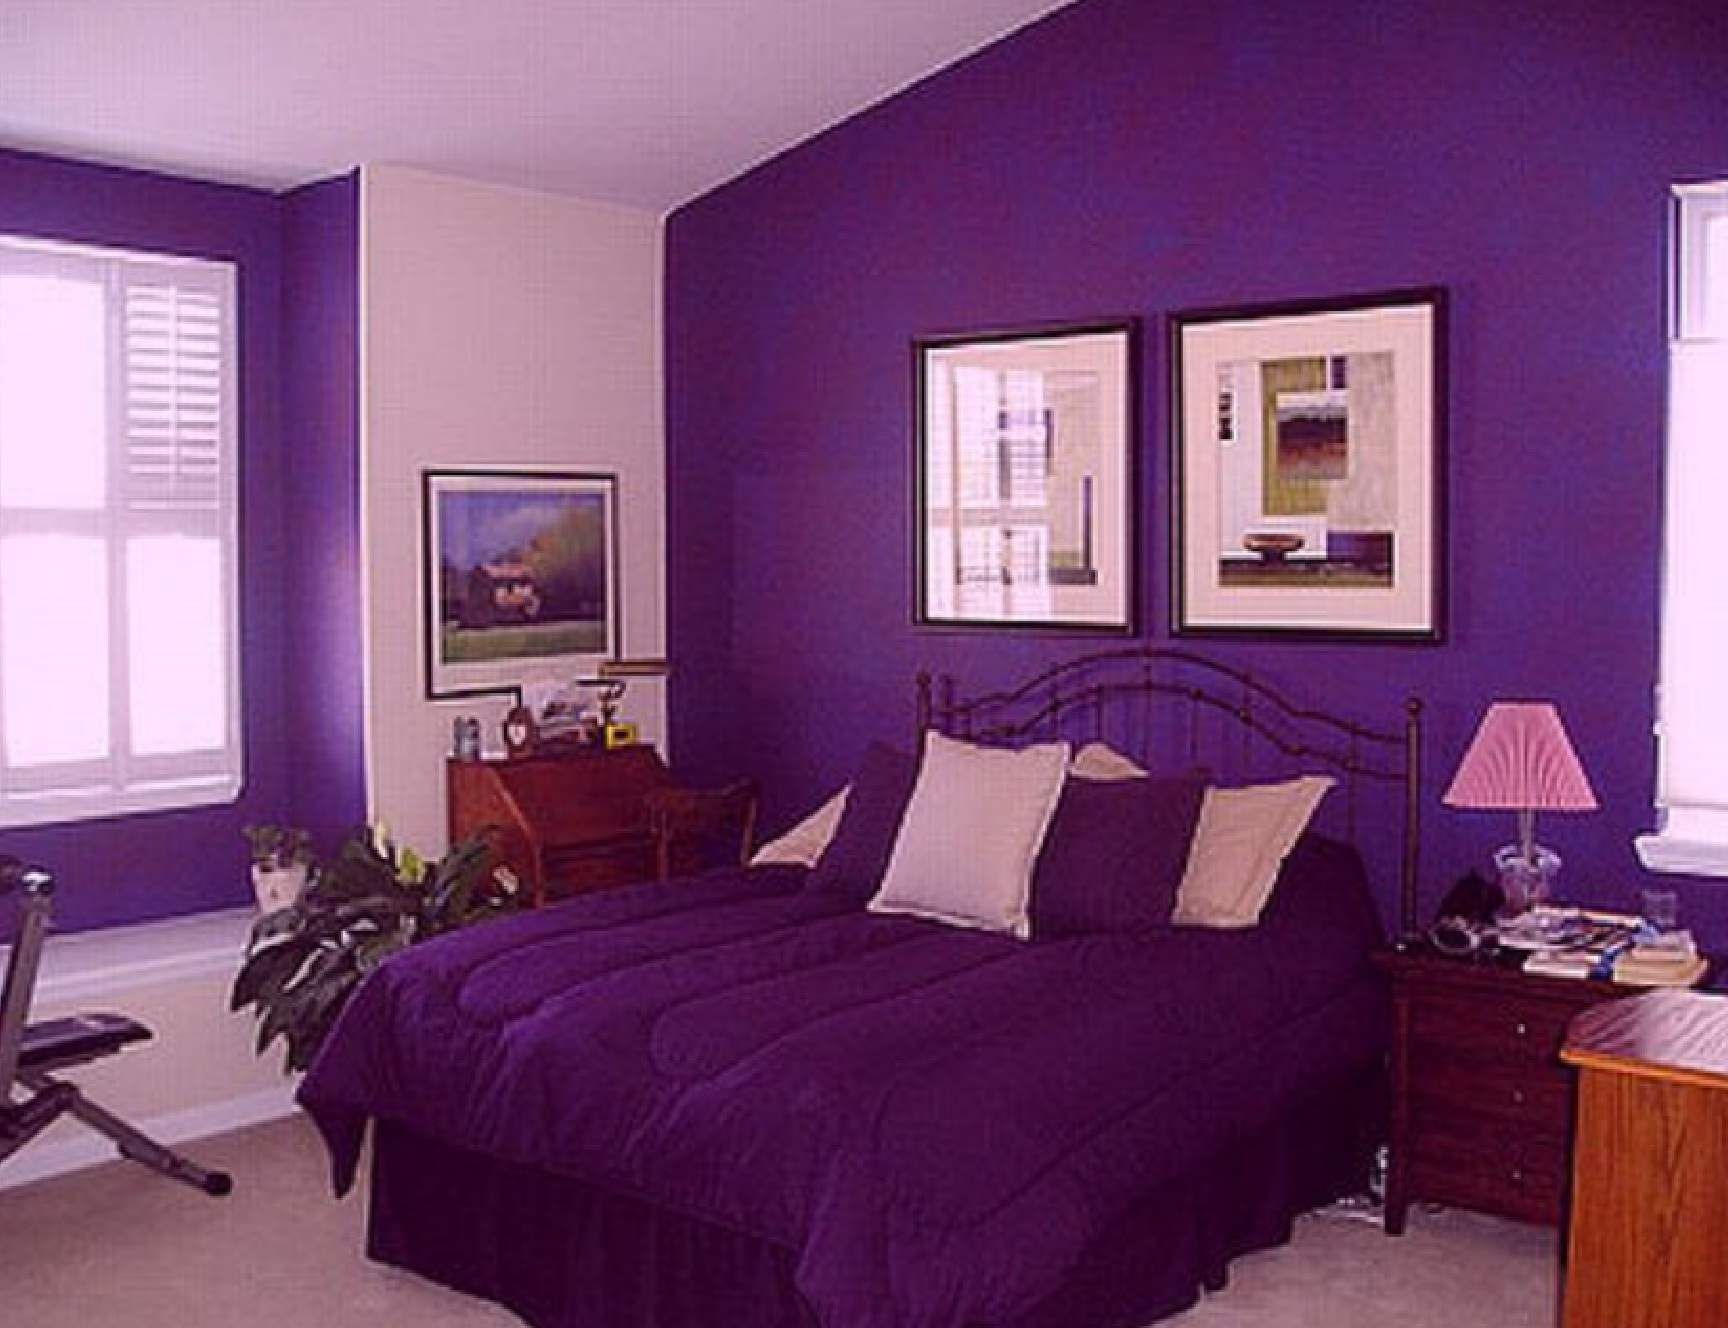 Paint colors for bedrooms purple - Purple Bedroom Decoration Ideas Purple Or Lavender One Of The Most Popular And Charming Used Color